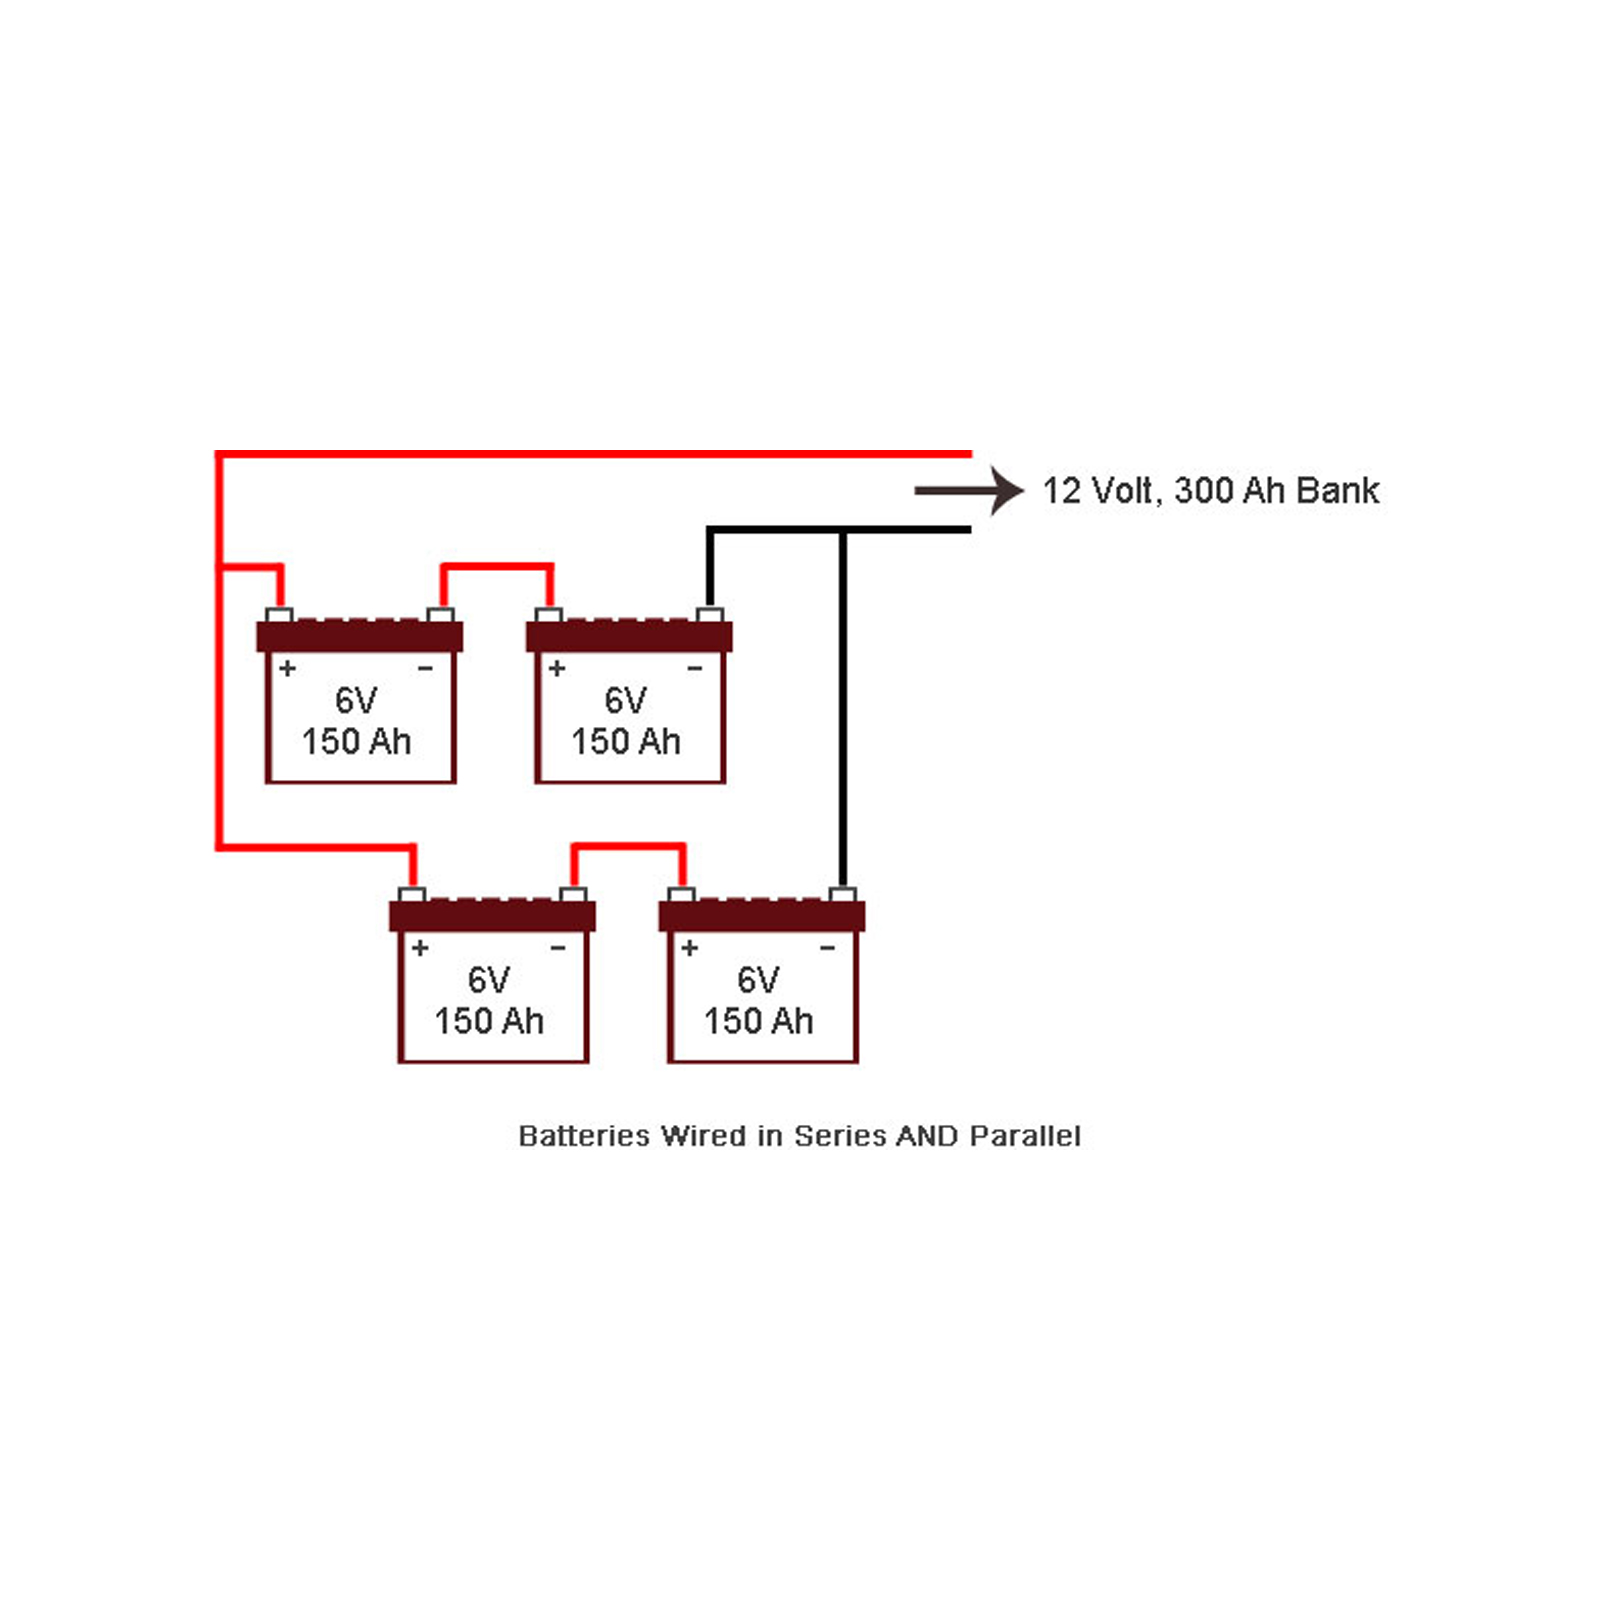 Series Battery Connection Diagram Books Of Wiring Parallel Cable Your Bank In And Ups